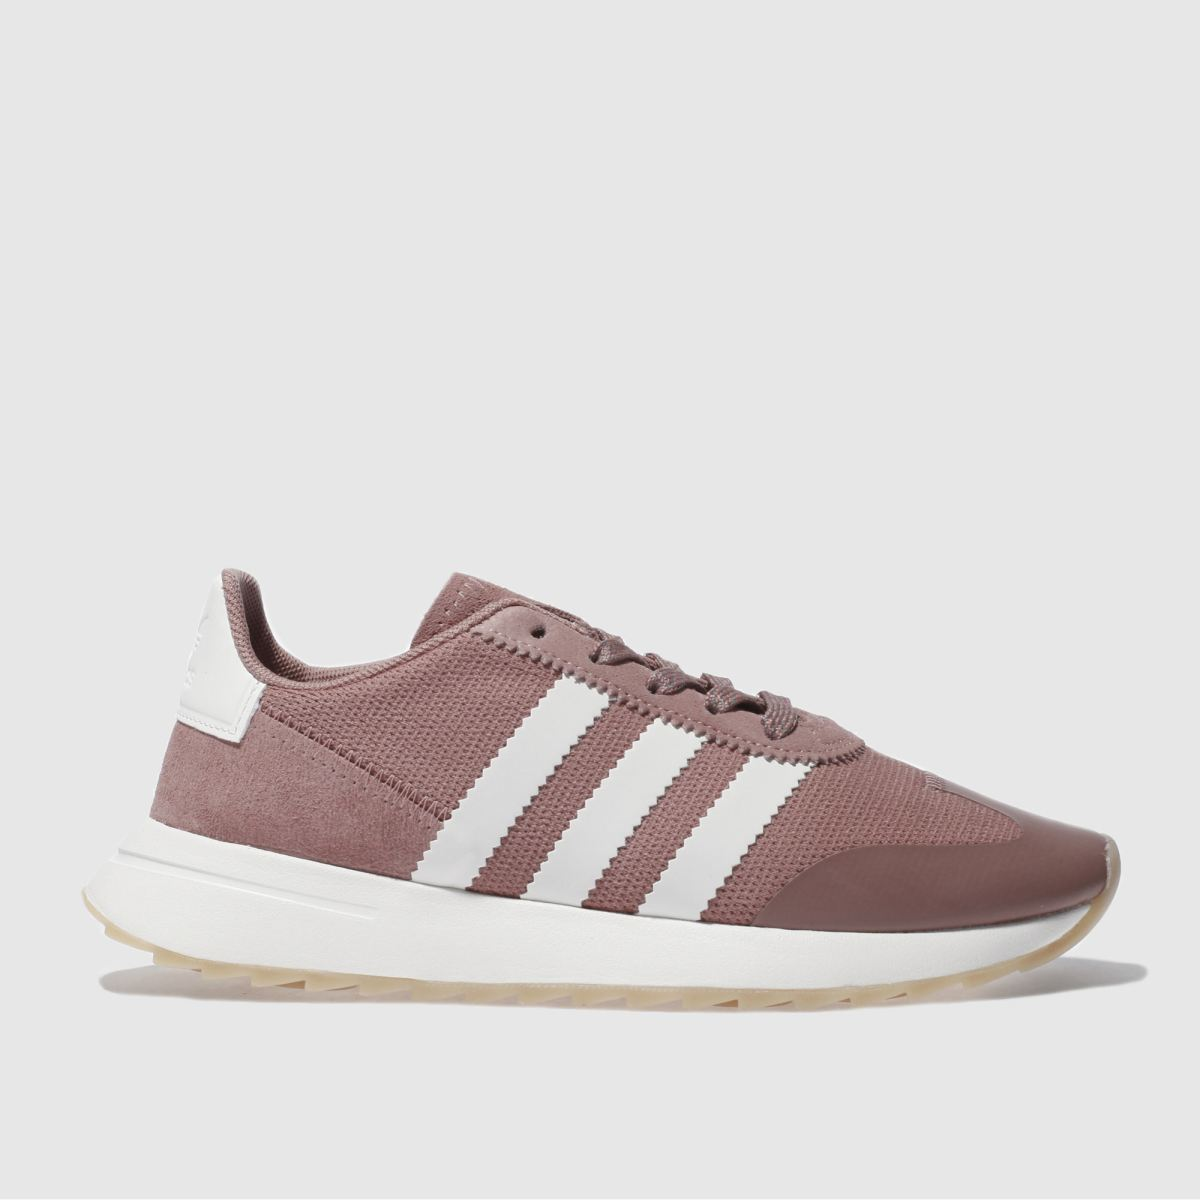 adidas pale pink flb trainers